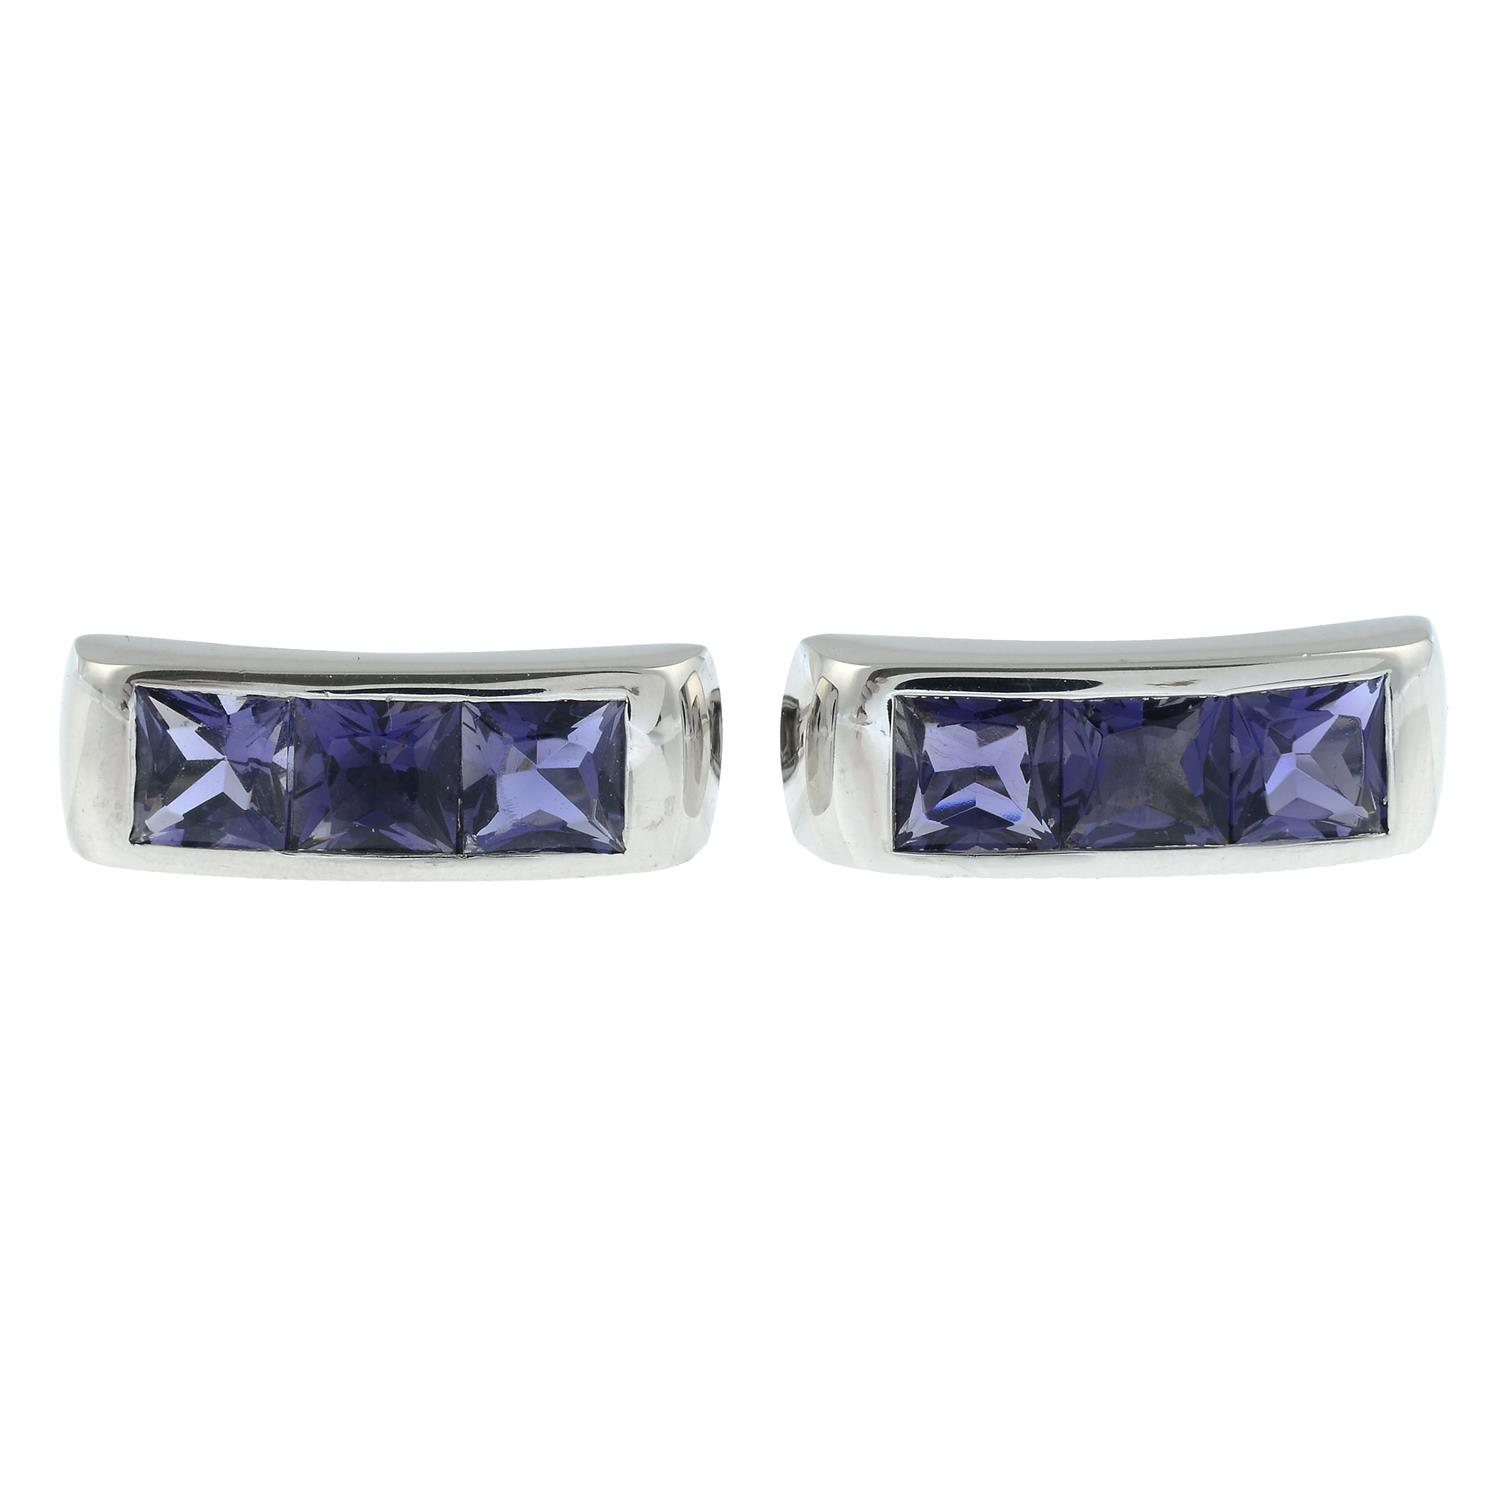 A pair of 18ct gold iolite cufflinks, by Ritz Fine Jewellery. - Image 2 of 4